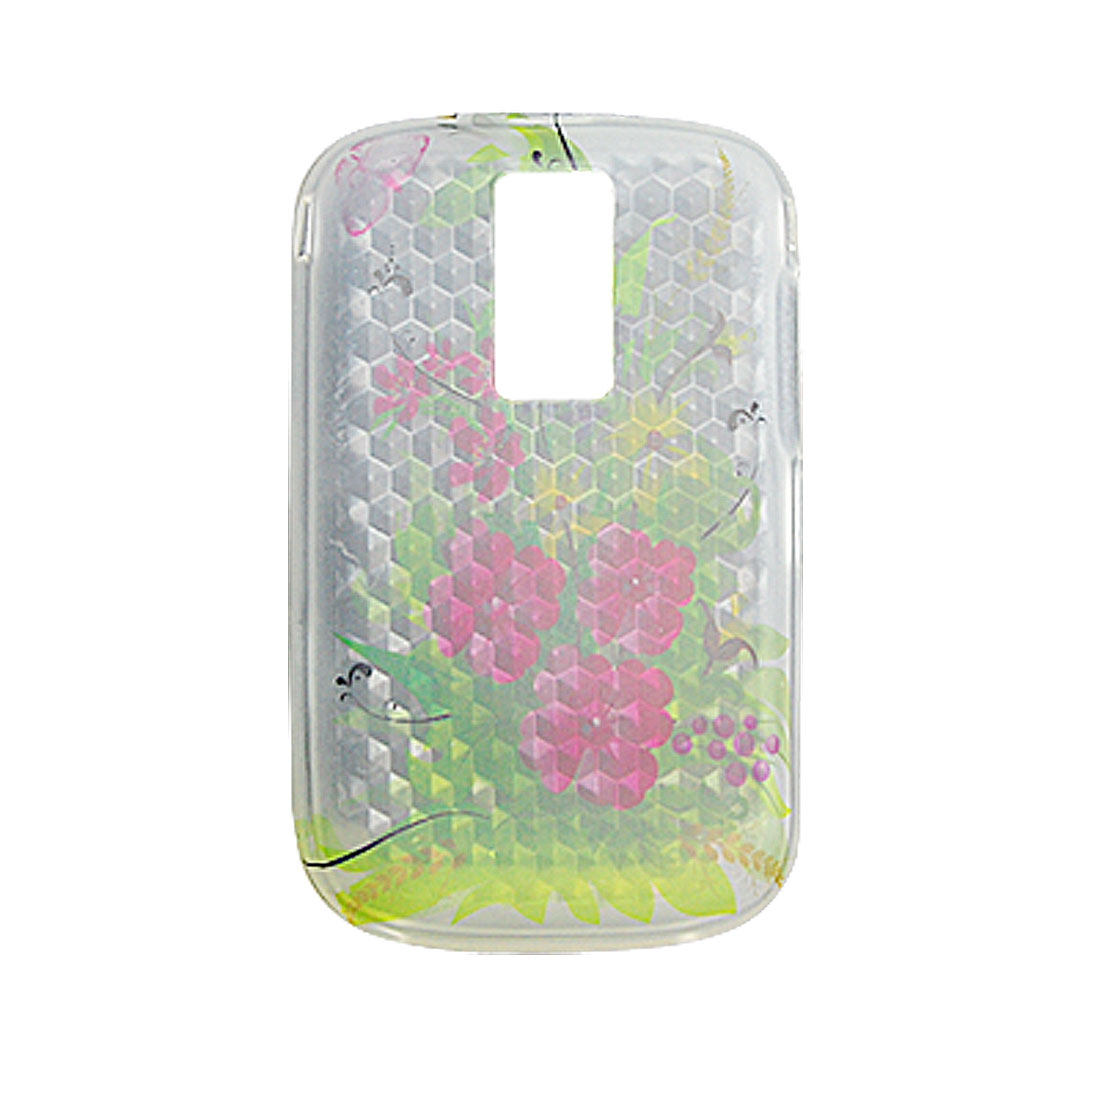 Flower Flexible Case Plastic Cover for Blackberry 9000